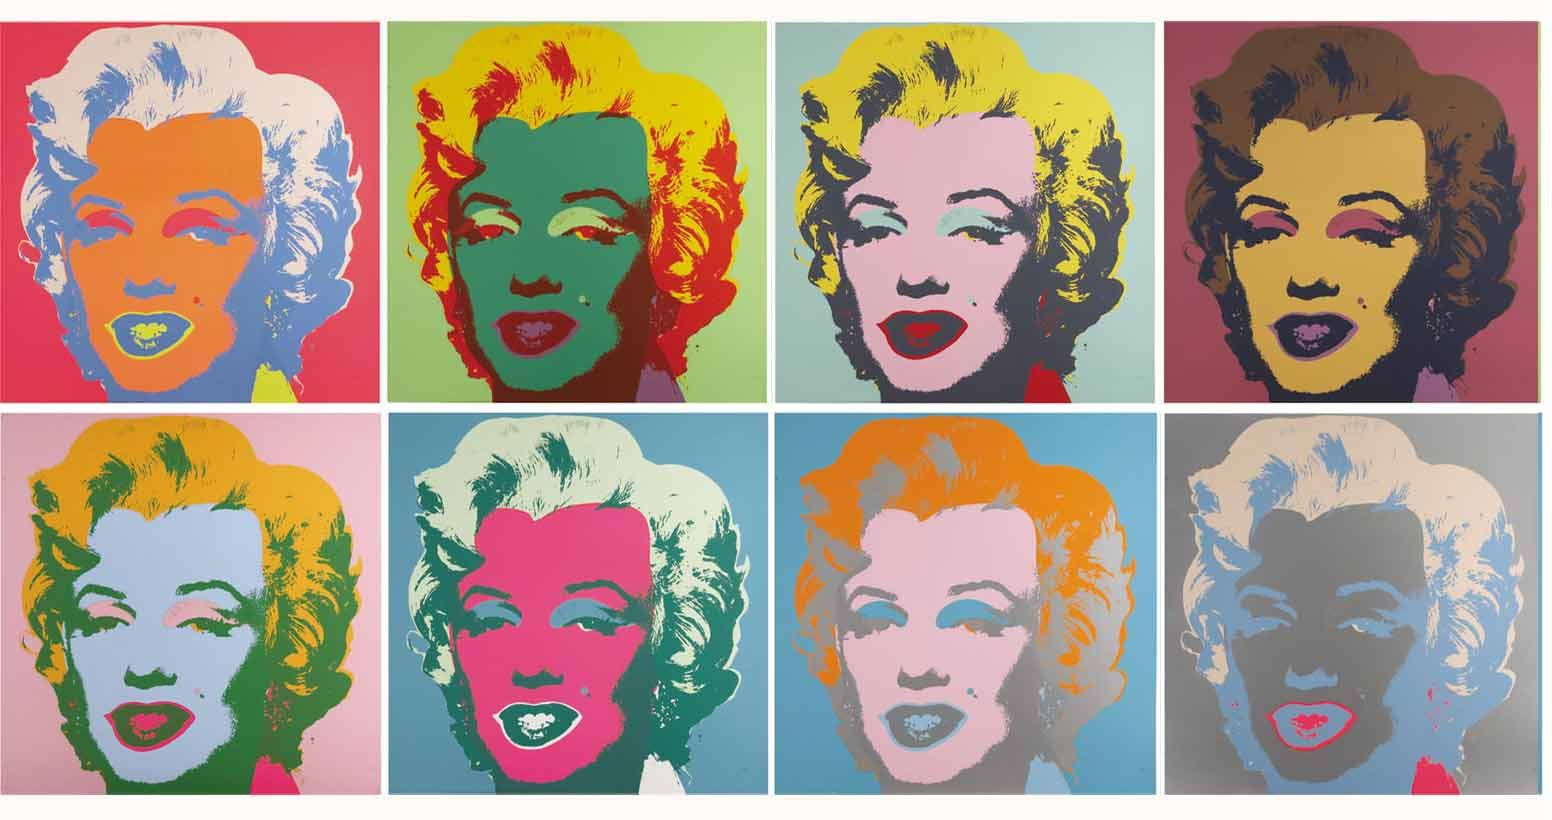 How To Ask Mathematica To Imitate Andy Warhol S Pop Art Painting Pop Art Painting Andy Warhol Pop Art Paintings Pop Art